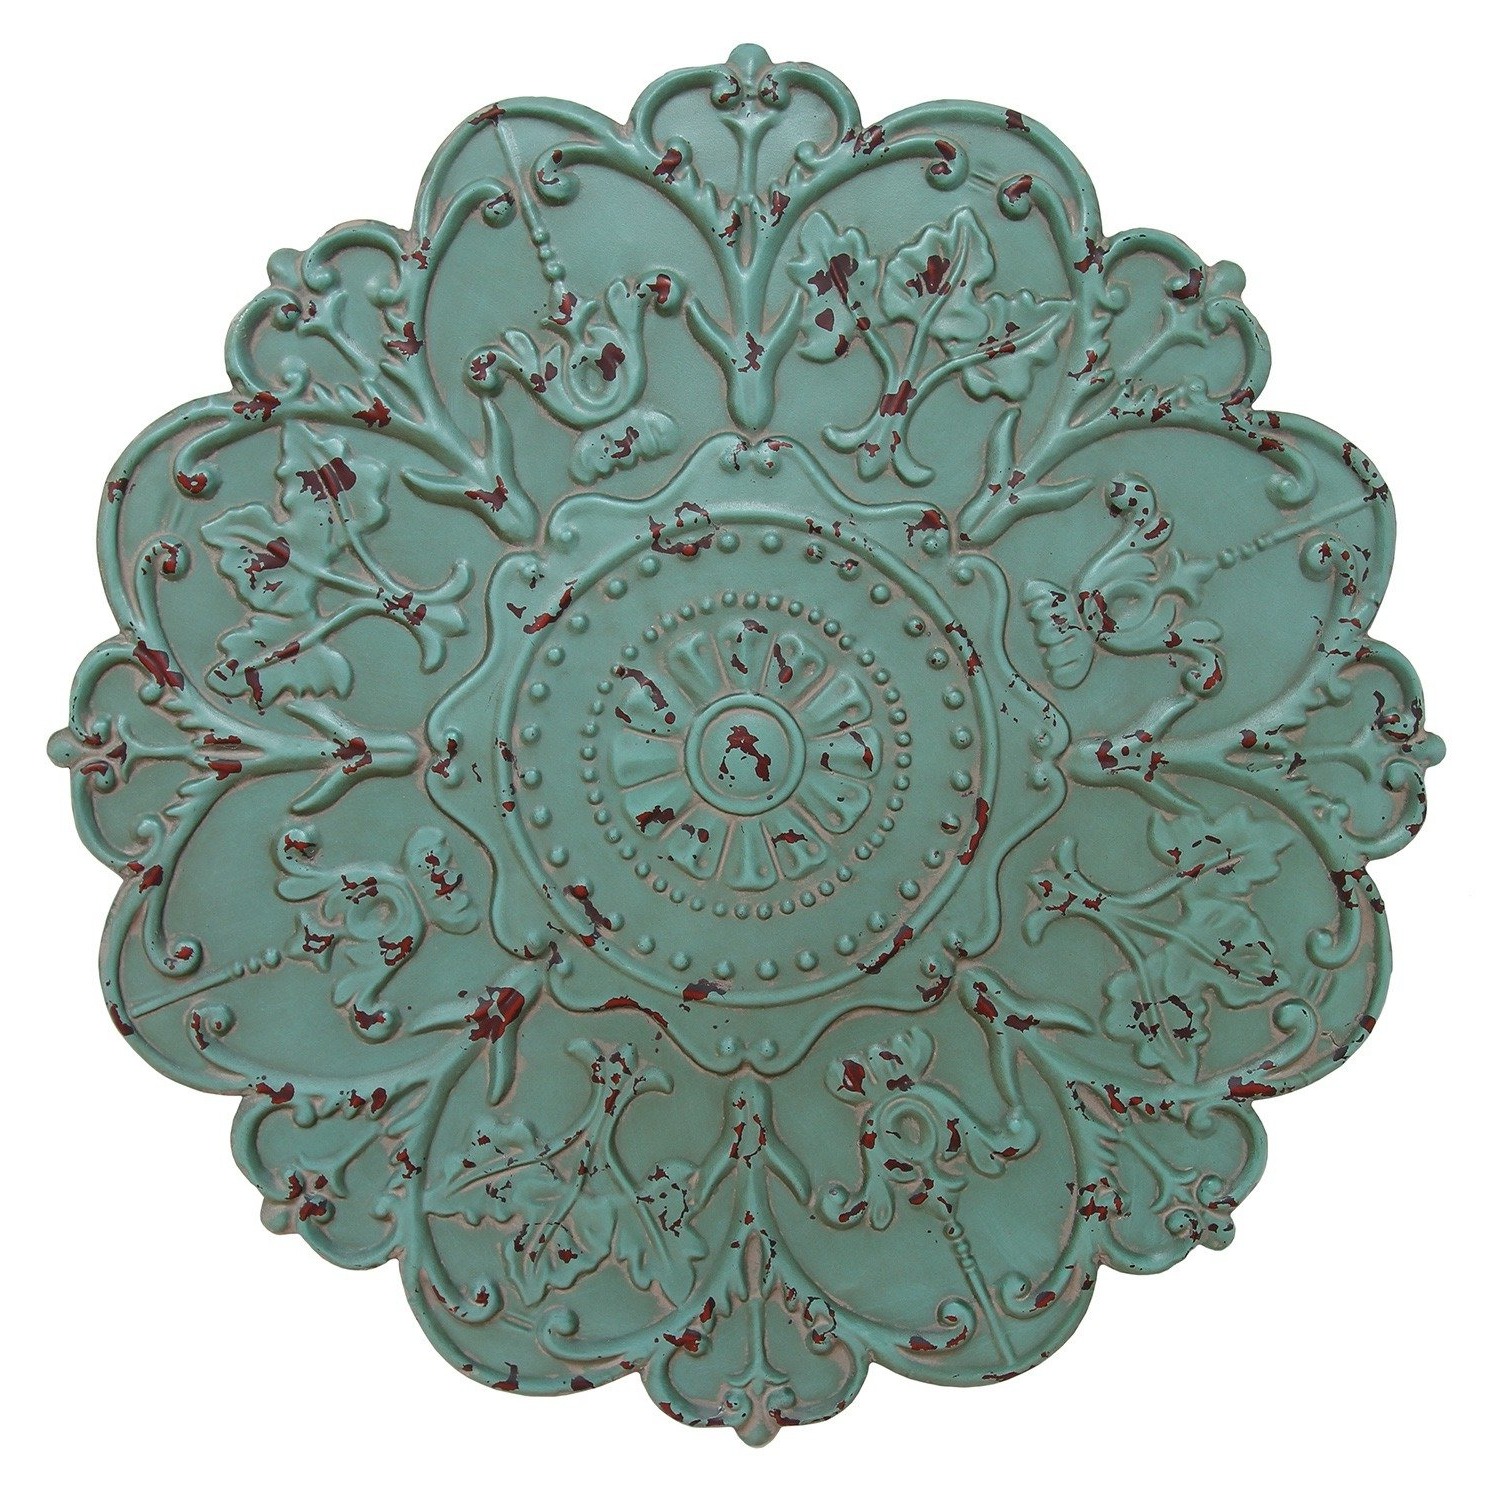 Shabby Medallion Wall Decor Regarding Most Current Amazon: Stratton Home Decor Shabby Medallion Wall Decor: Home (View 13 of 20)